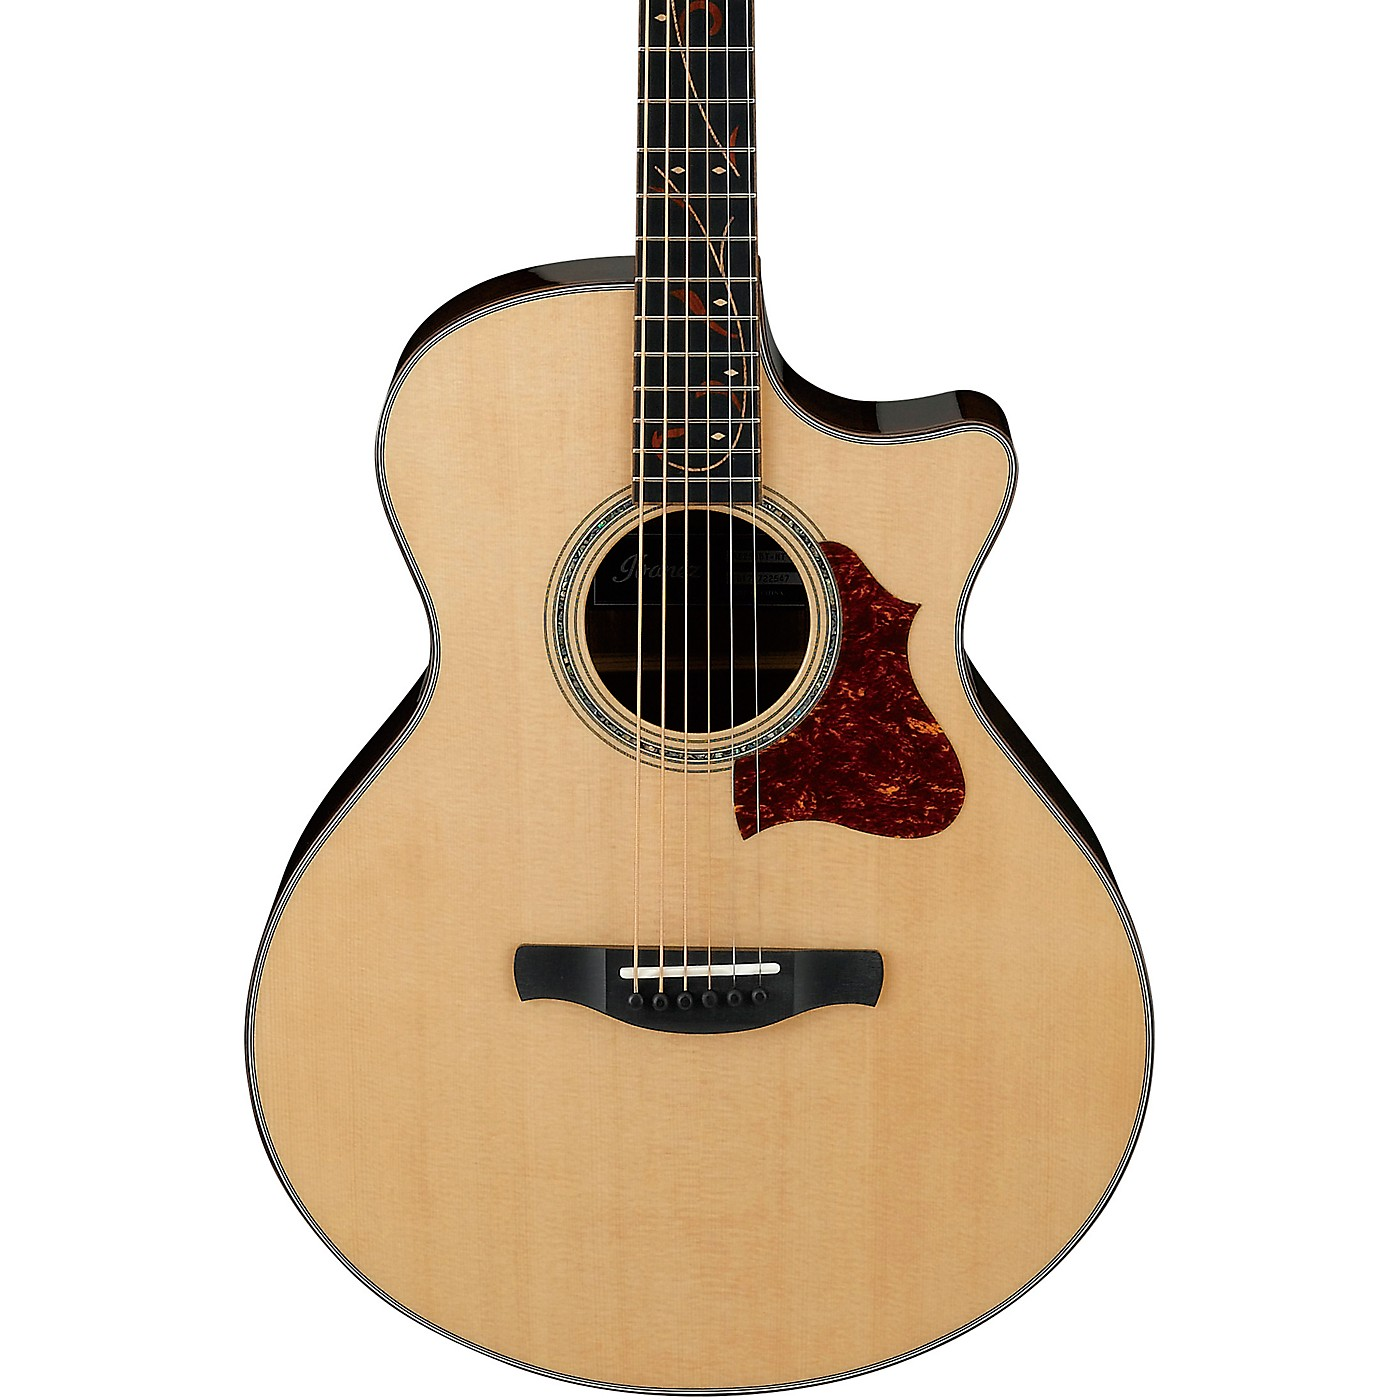 Ibanez AE255BT Baritone Acoustic-Electric Guitar thumbnail